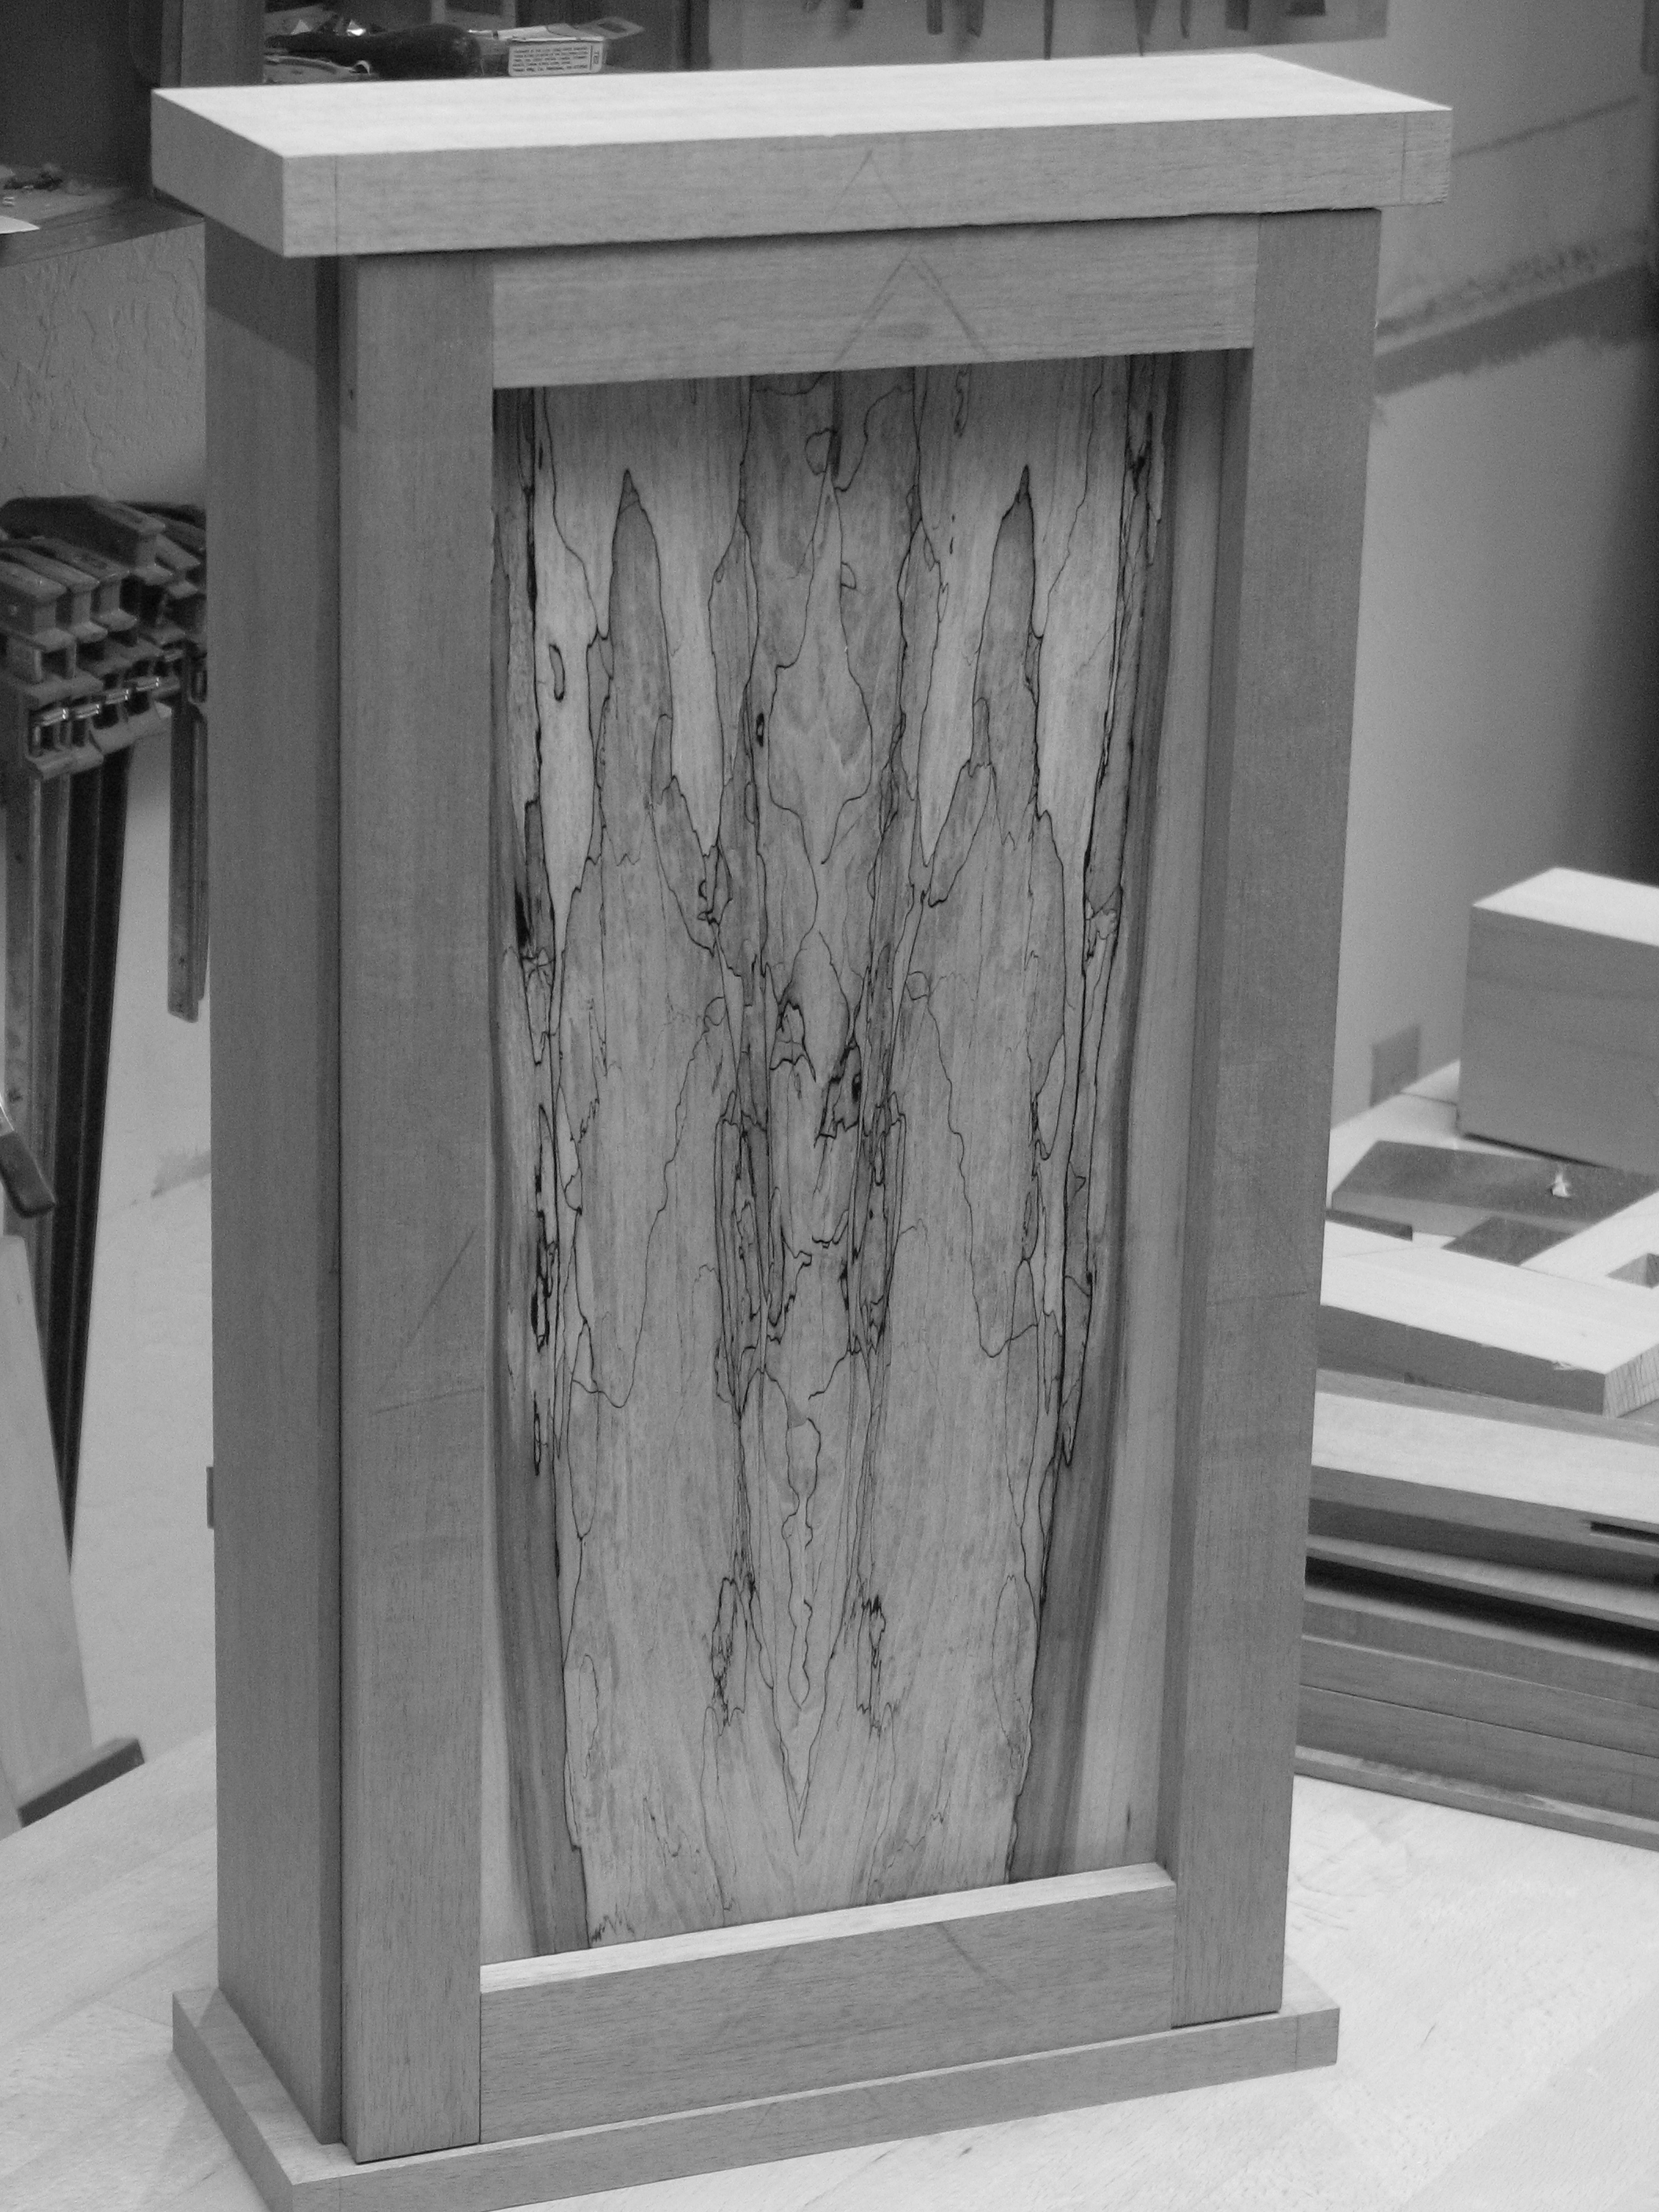 How To Build A Small Wall Cabinet